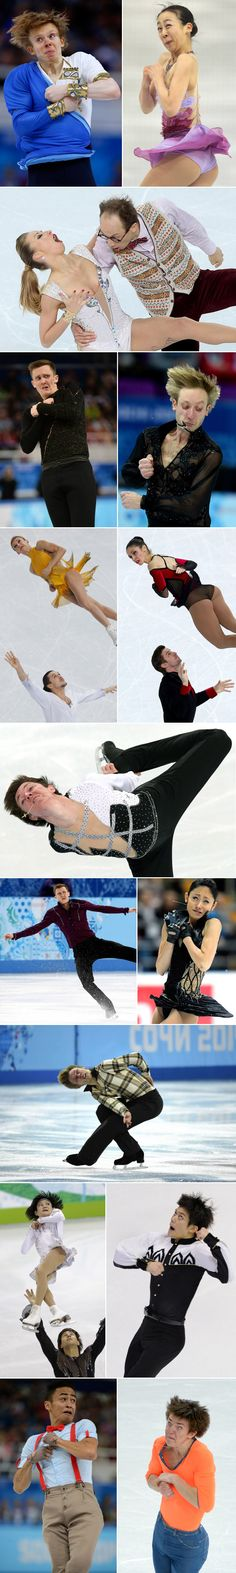 Hilarious faces of Olympic figure skaters